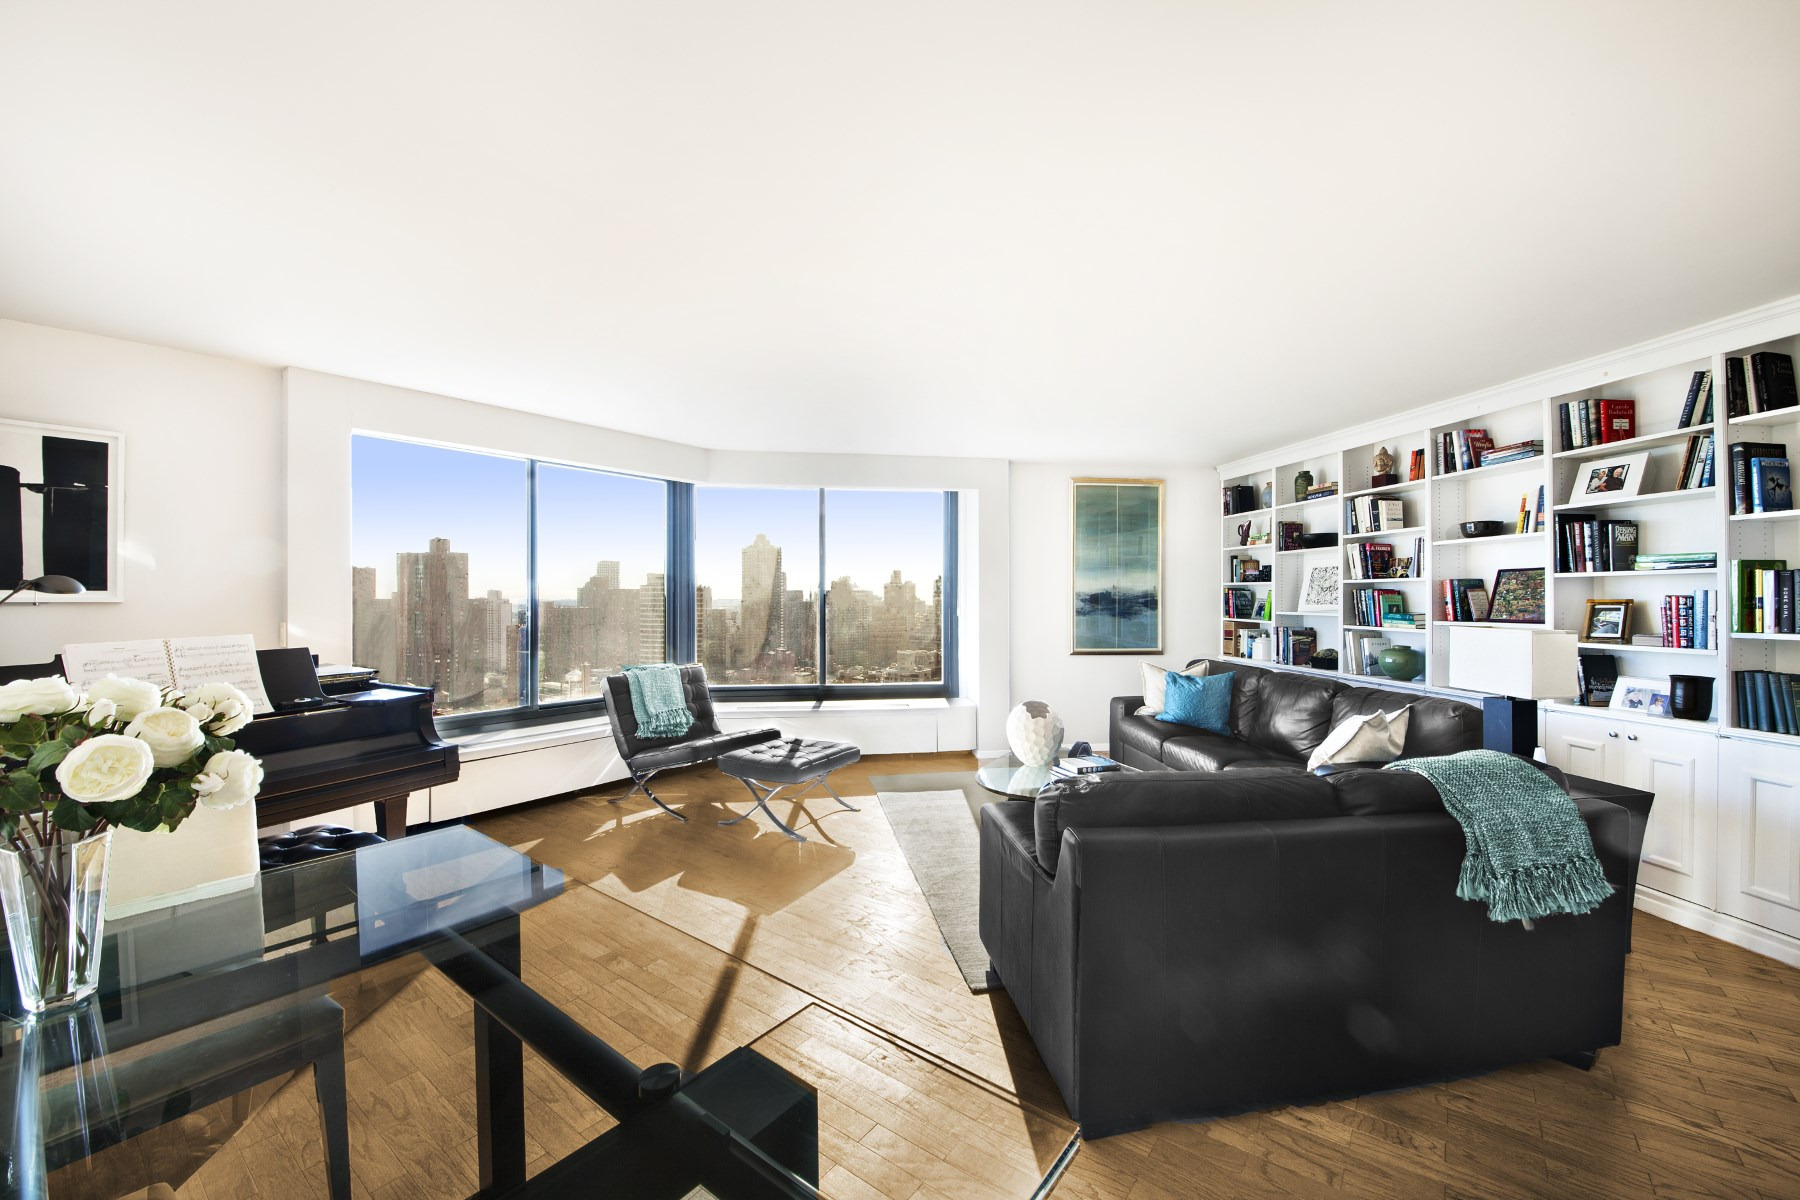 Condominium for Sale at 40 East 94th Street, Residence 29G 40 East 94th Street Apt 29G Upper East Side, New York, New York, 10128 United States